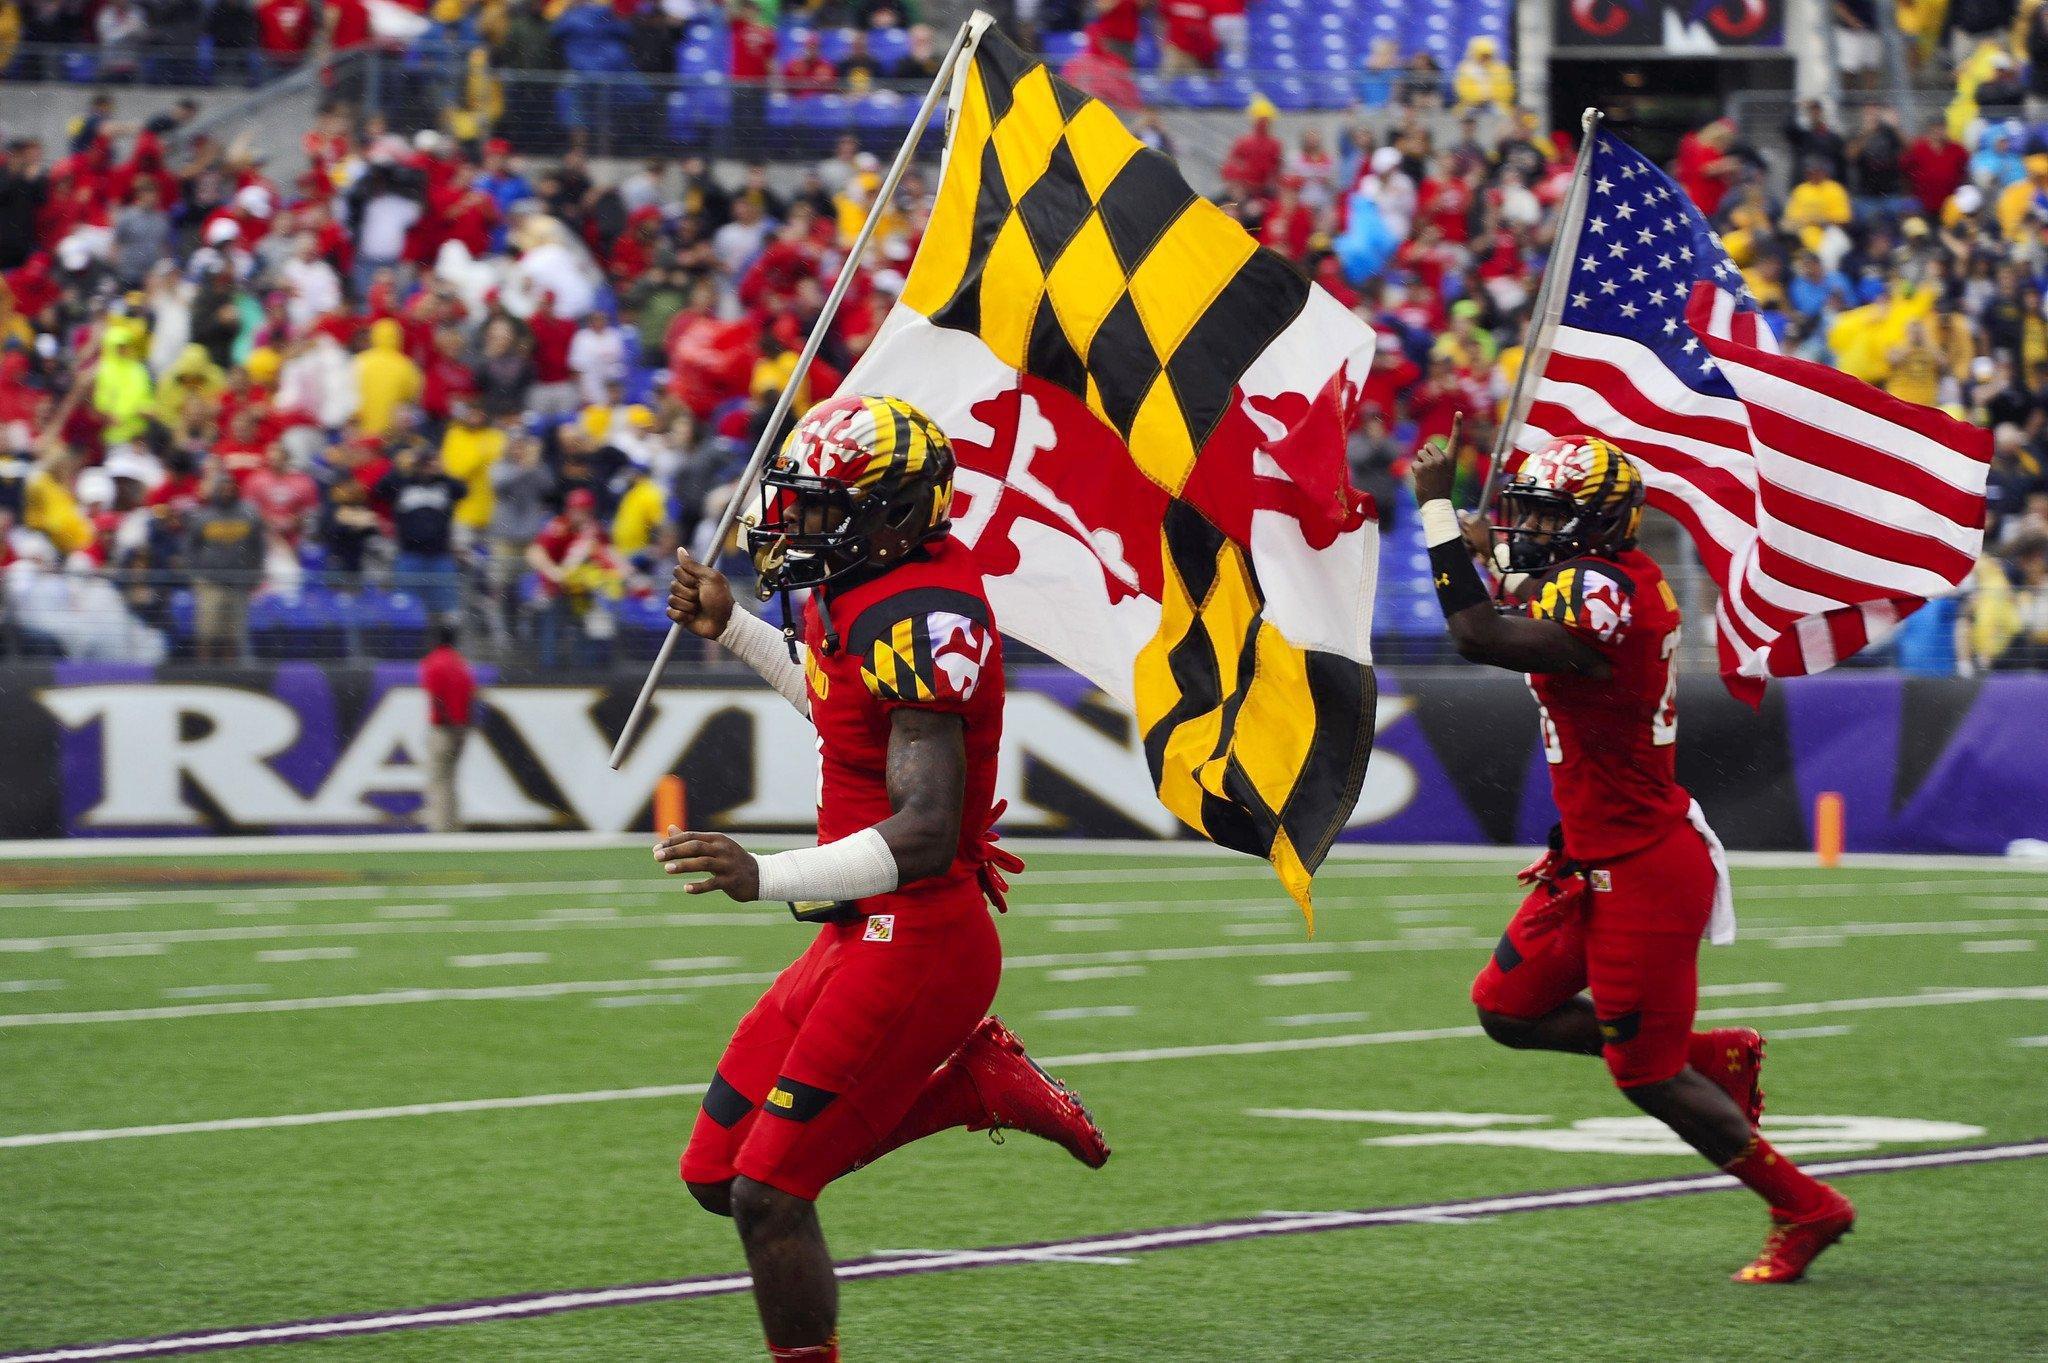 Maryland Terps Wallpapers Hd